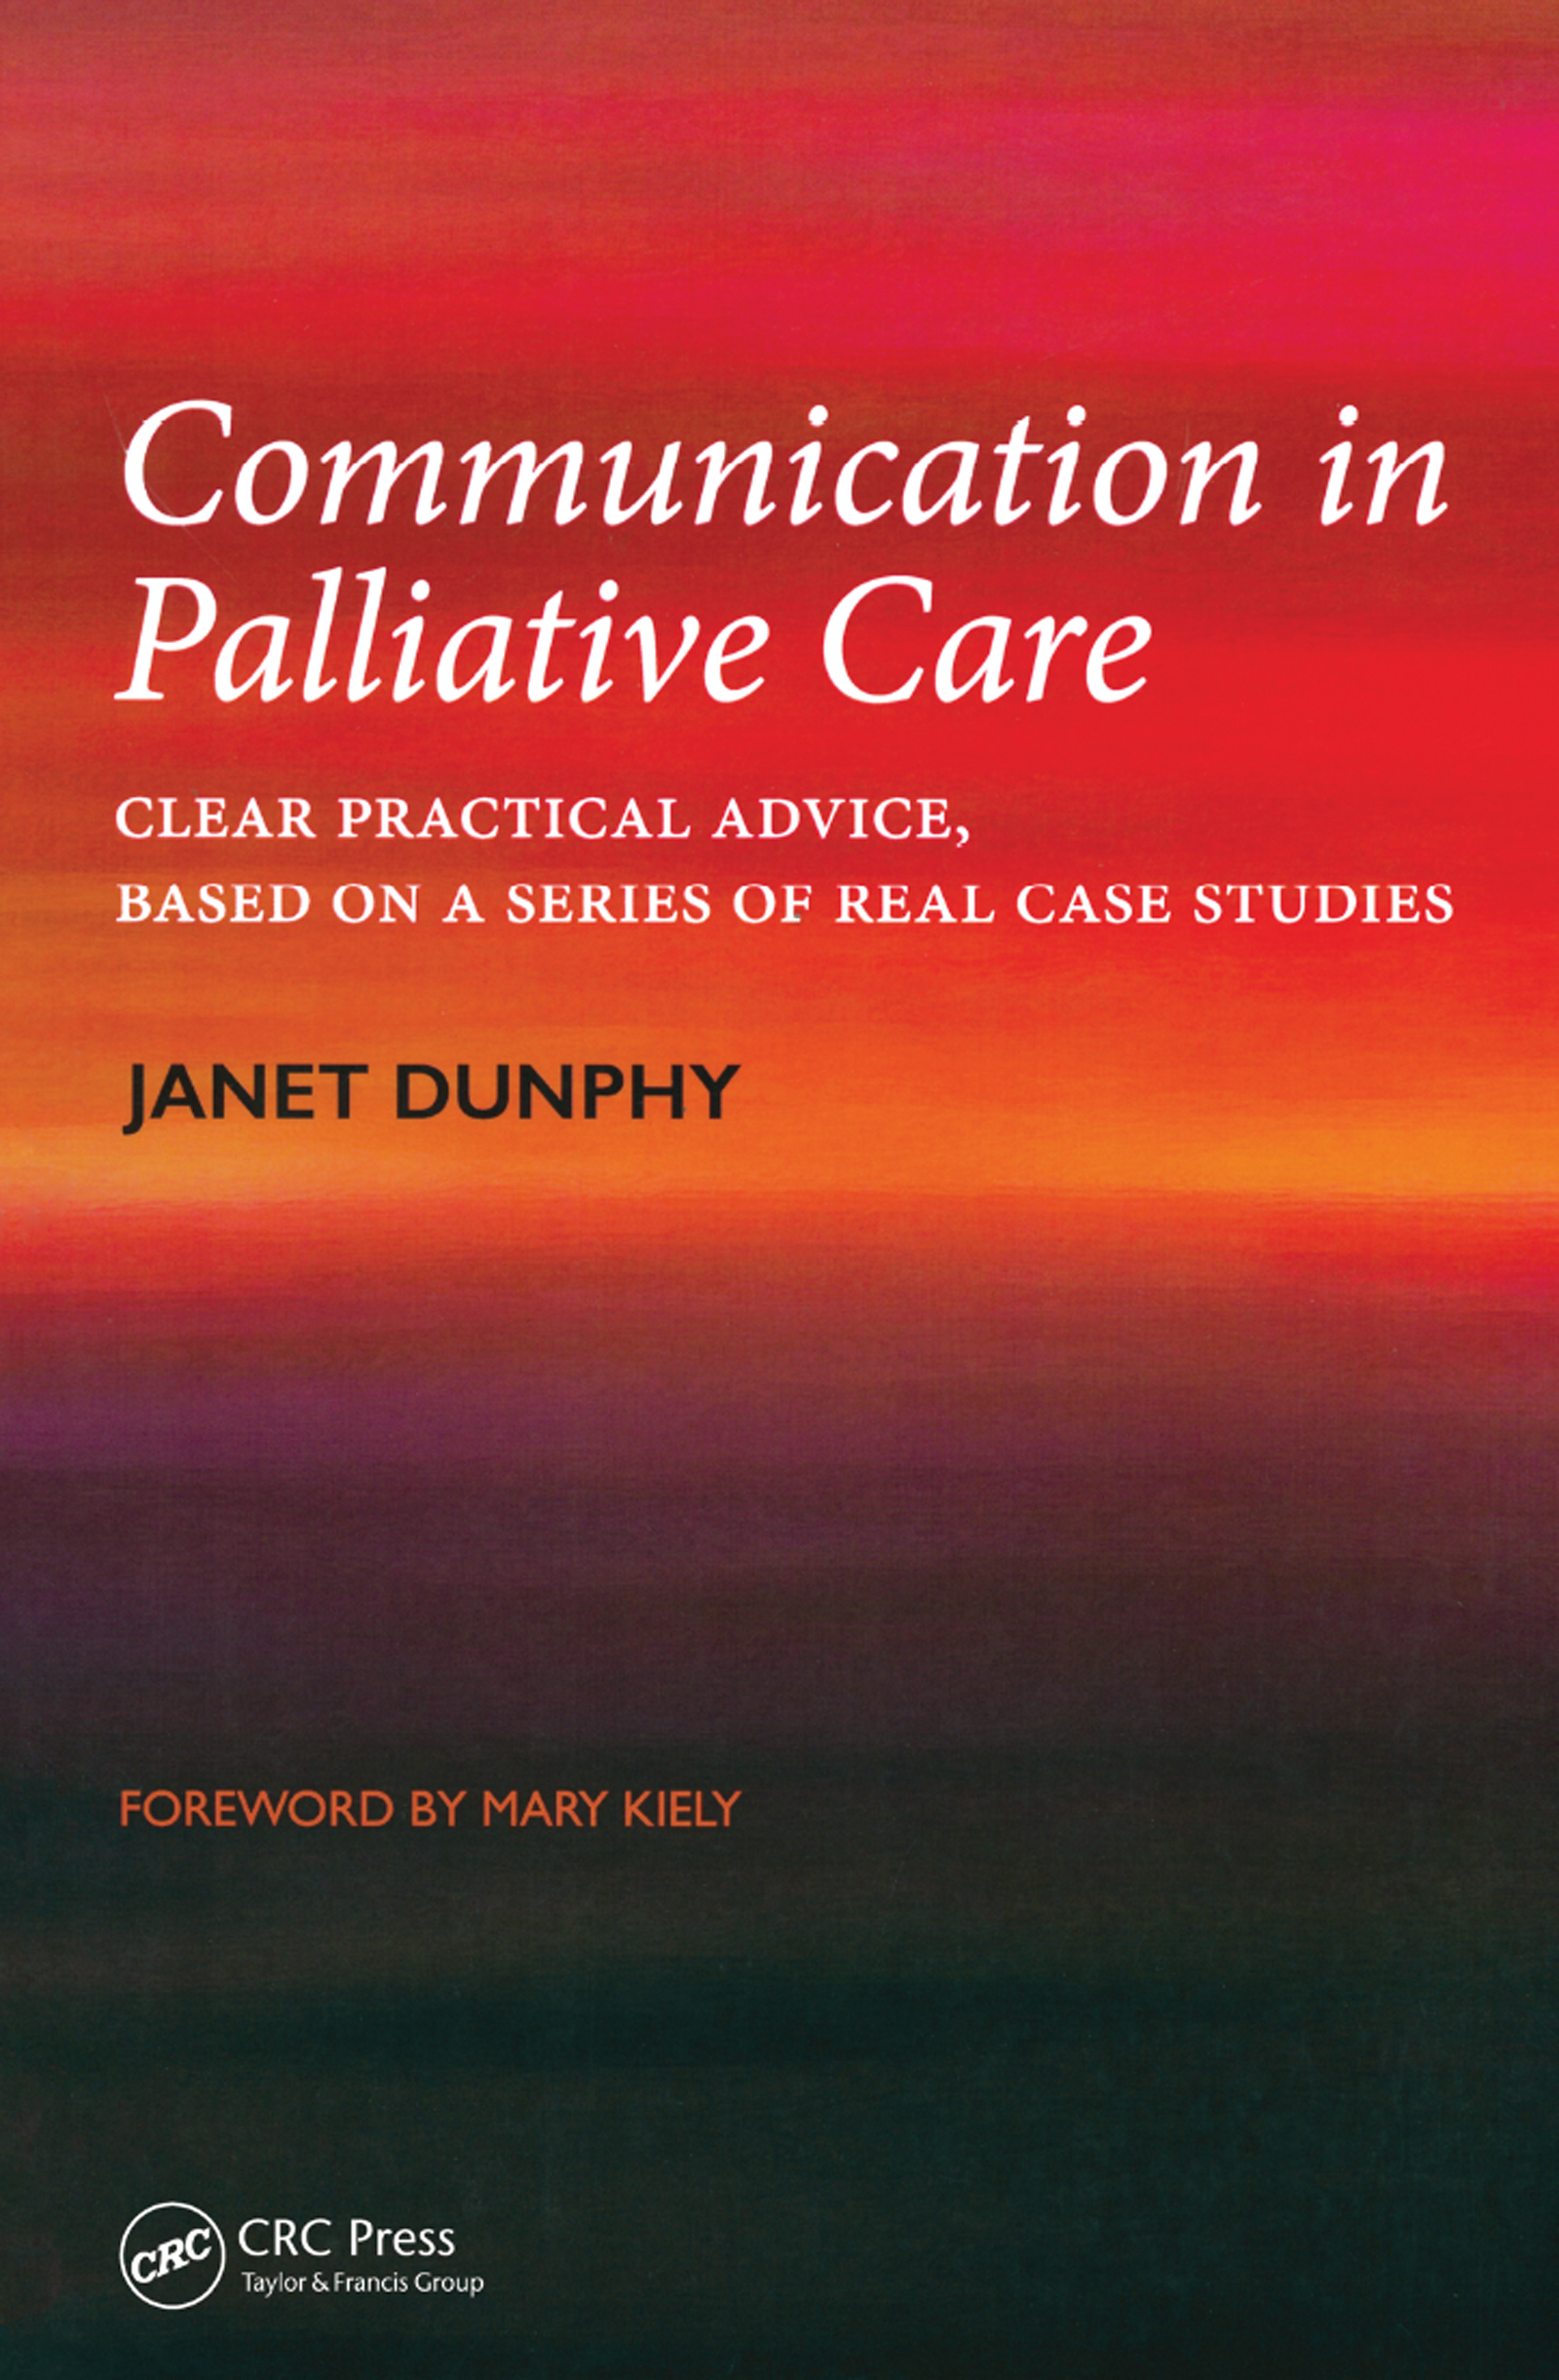 Communication in Palliative Care: Clear Practical Advice, Based on a Series of Real Case Studies book cover